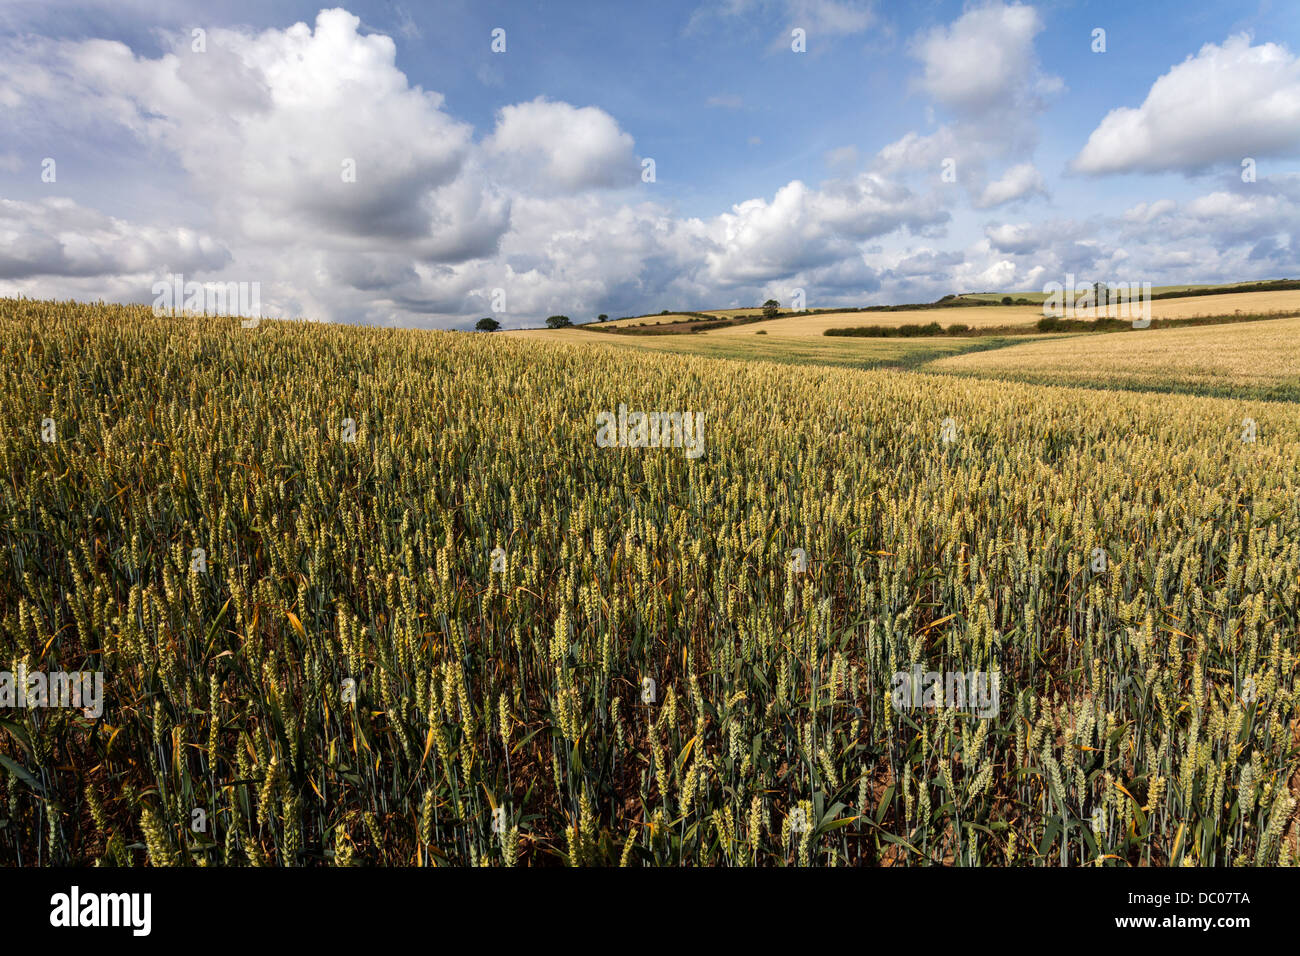 Wheat field in July with blue sky and white clouds above. Taken from the Cleveland Way footpath near Scarborough - Stock Image